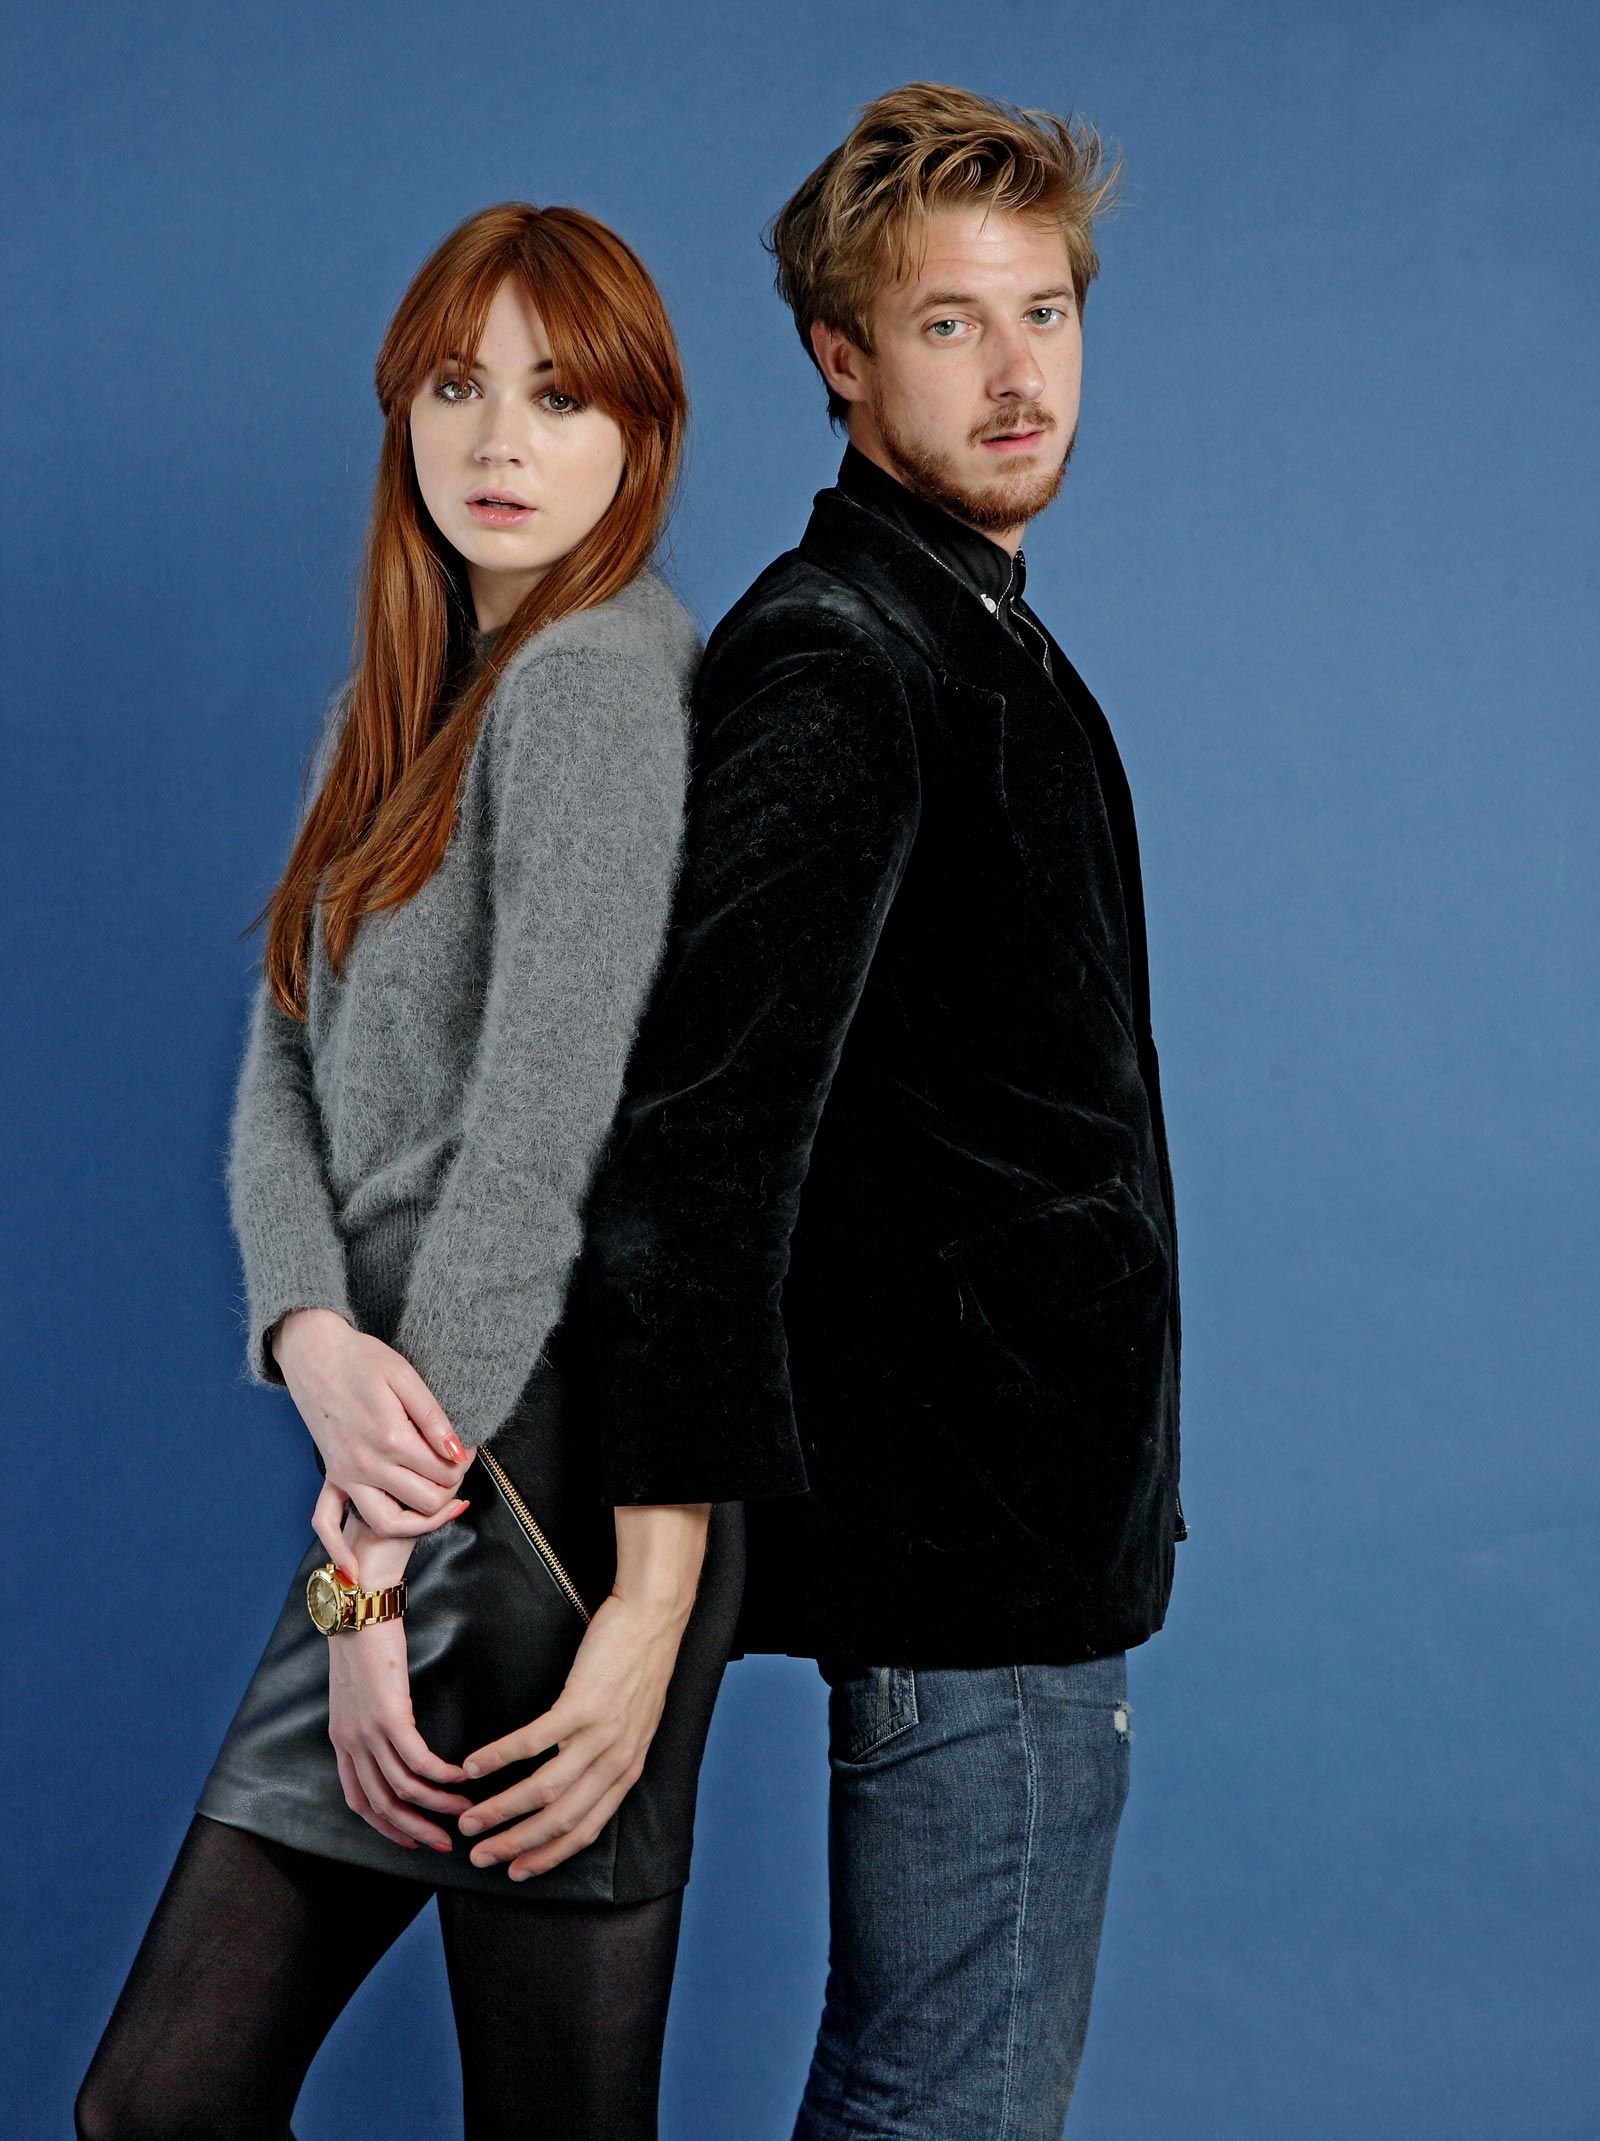 Watch Arthur Darvill (born 1982) video